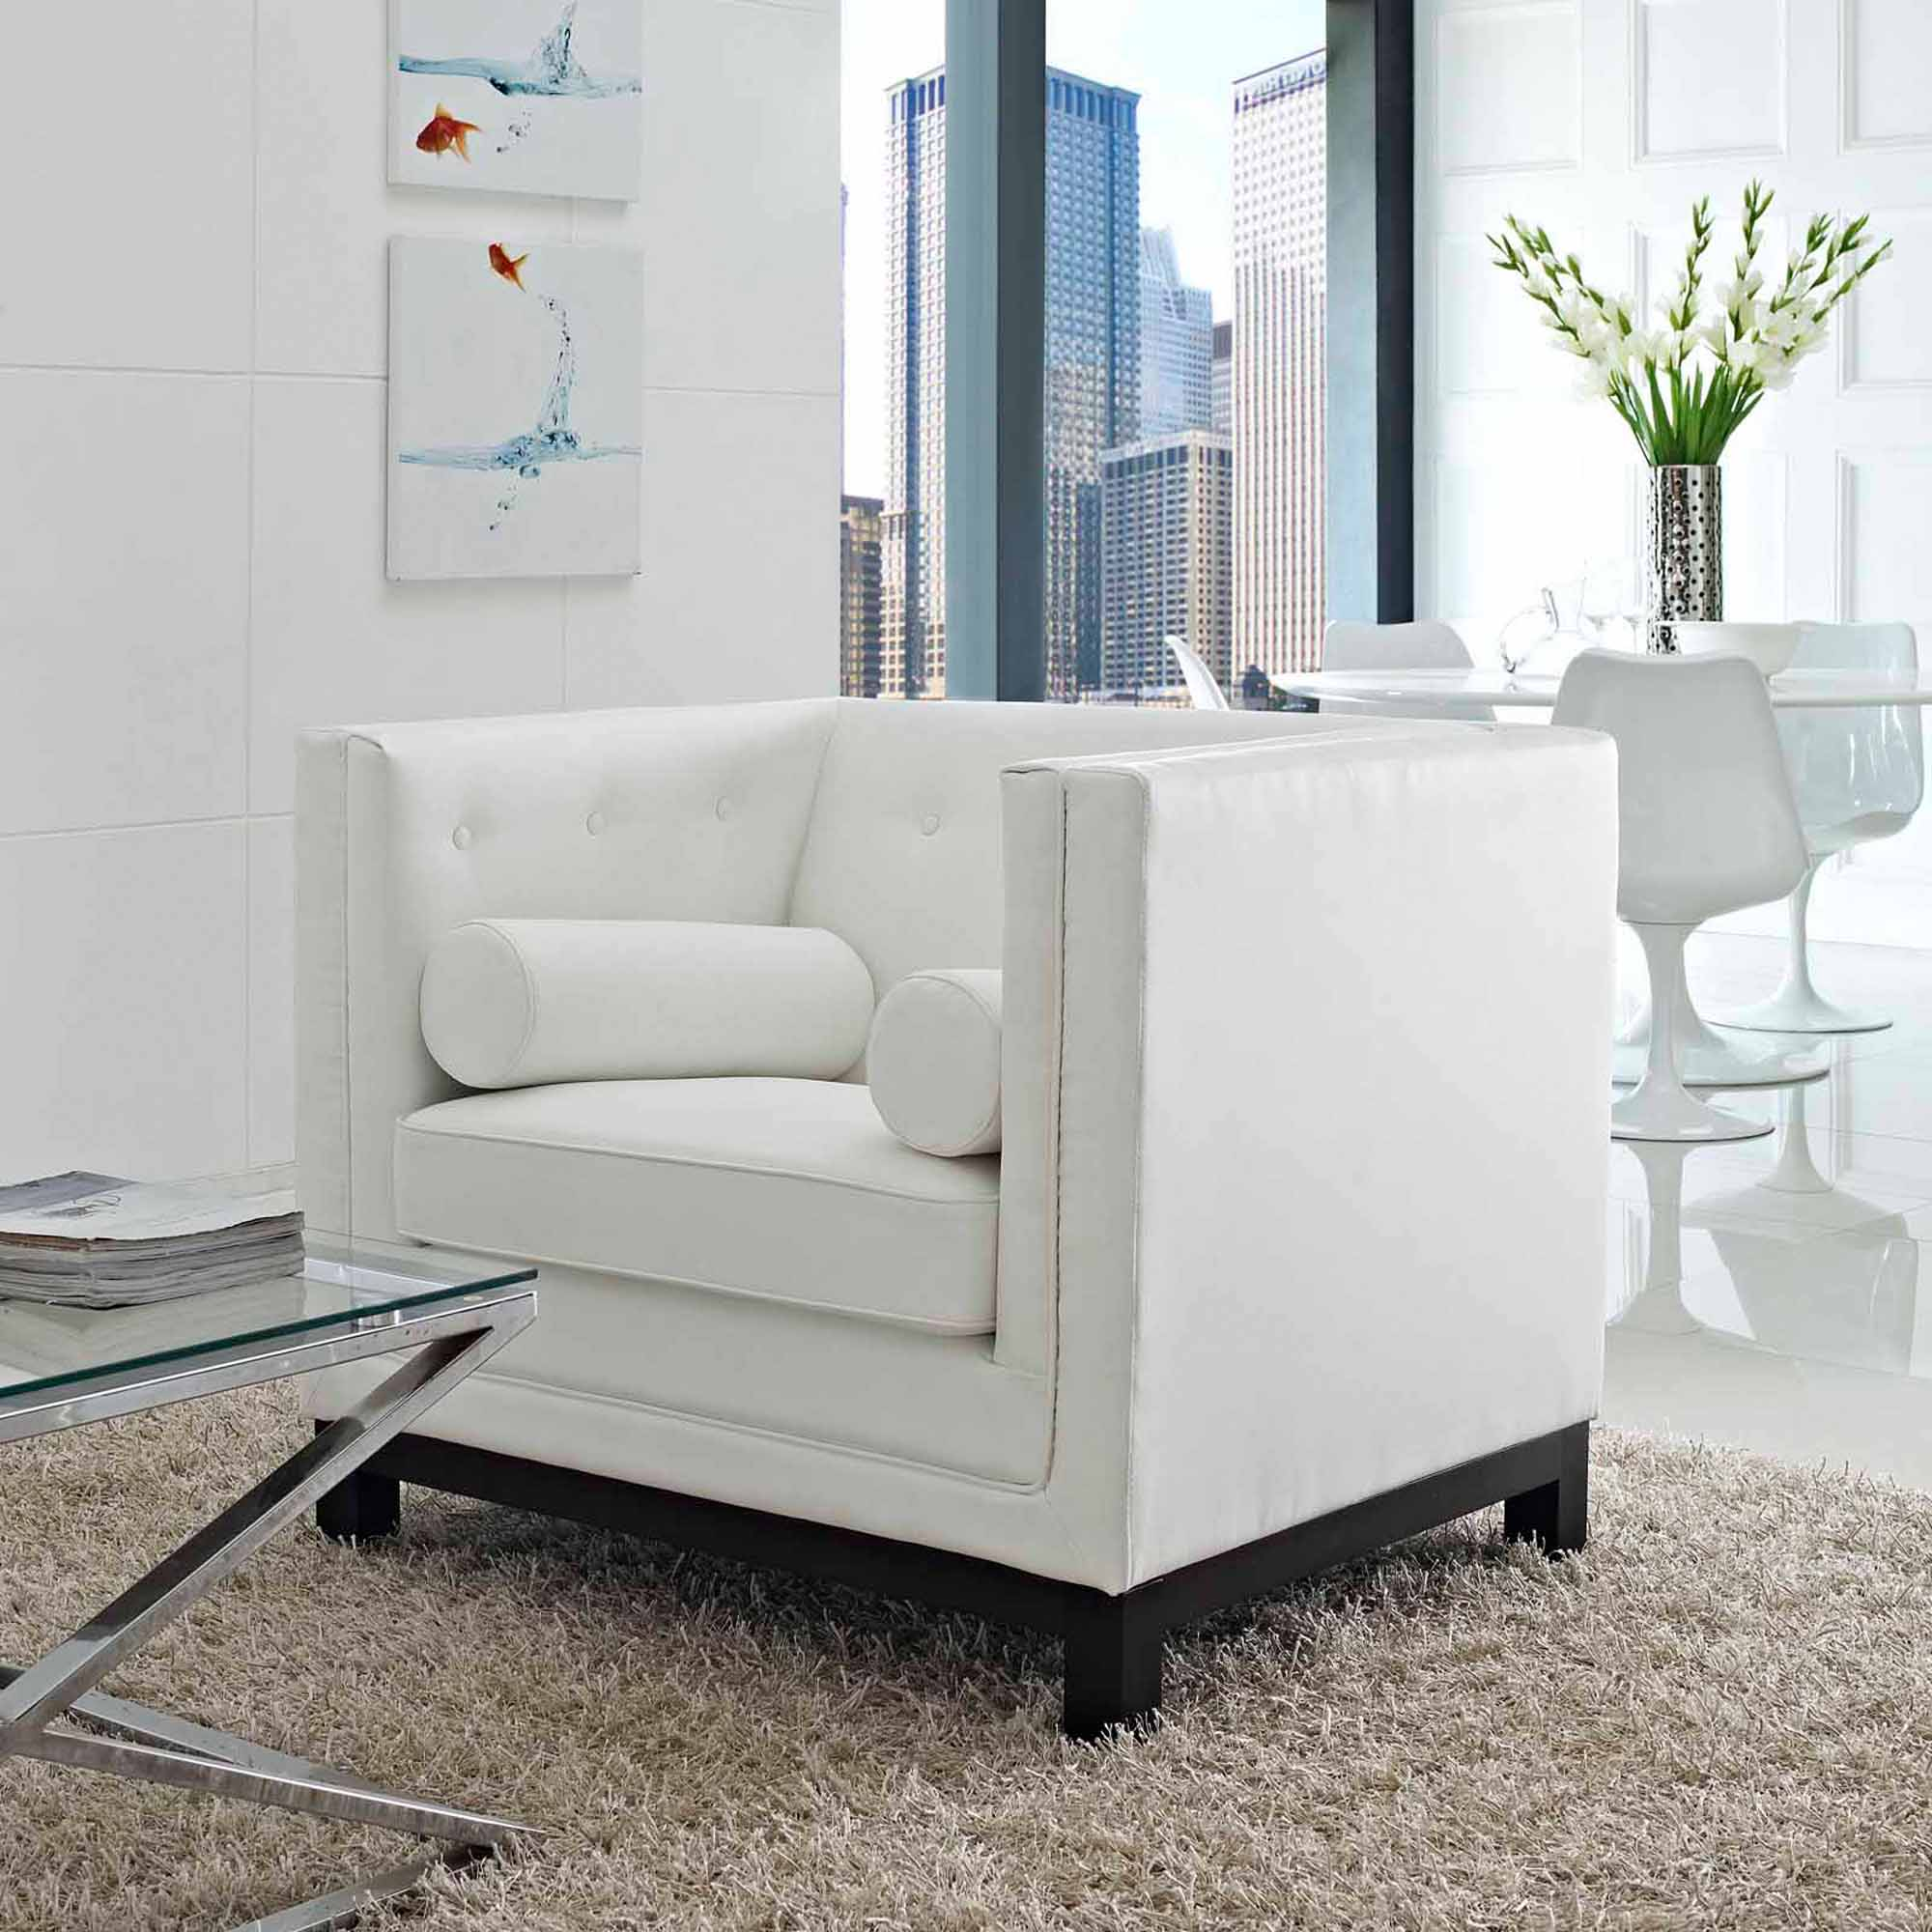 Modway Imperial Tufted Leather Armchair, Multiple Colors by Modway